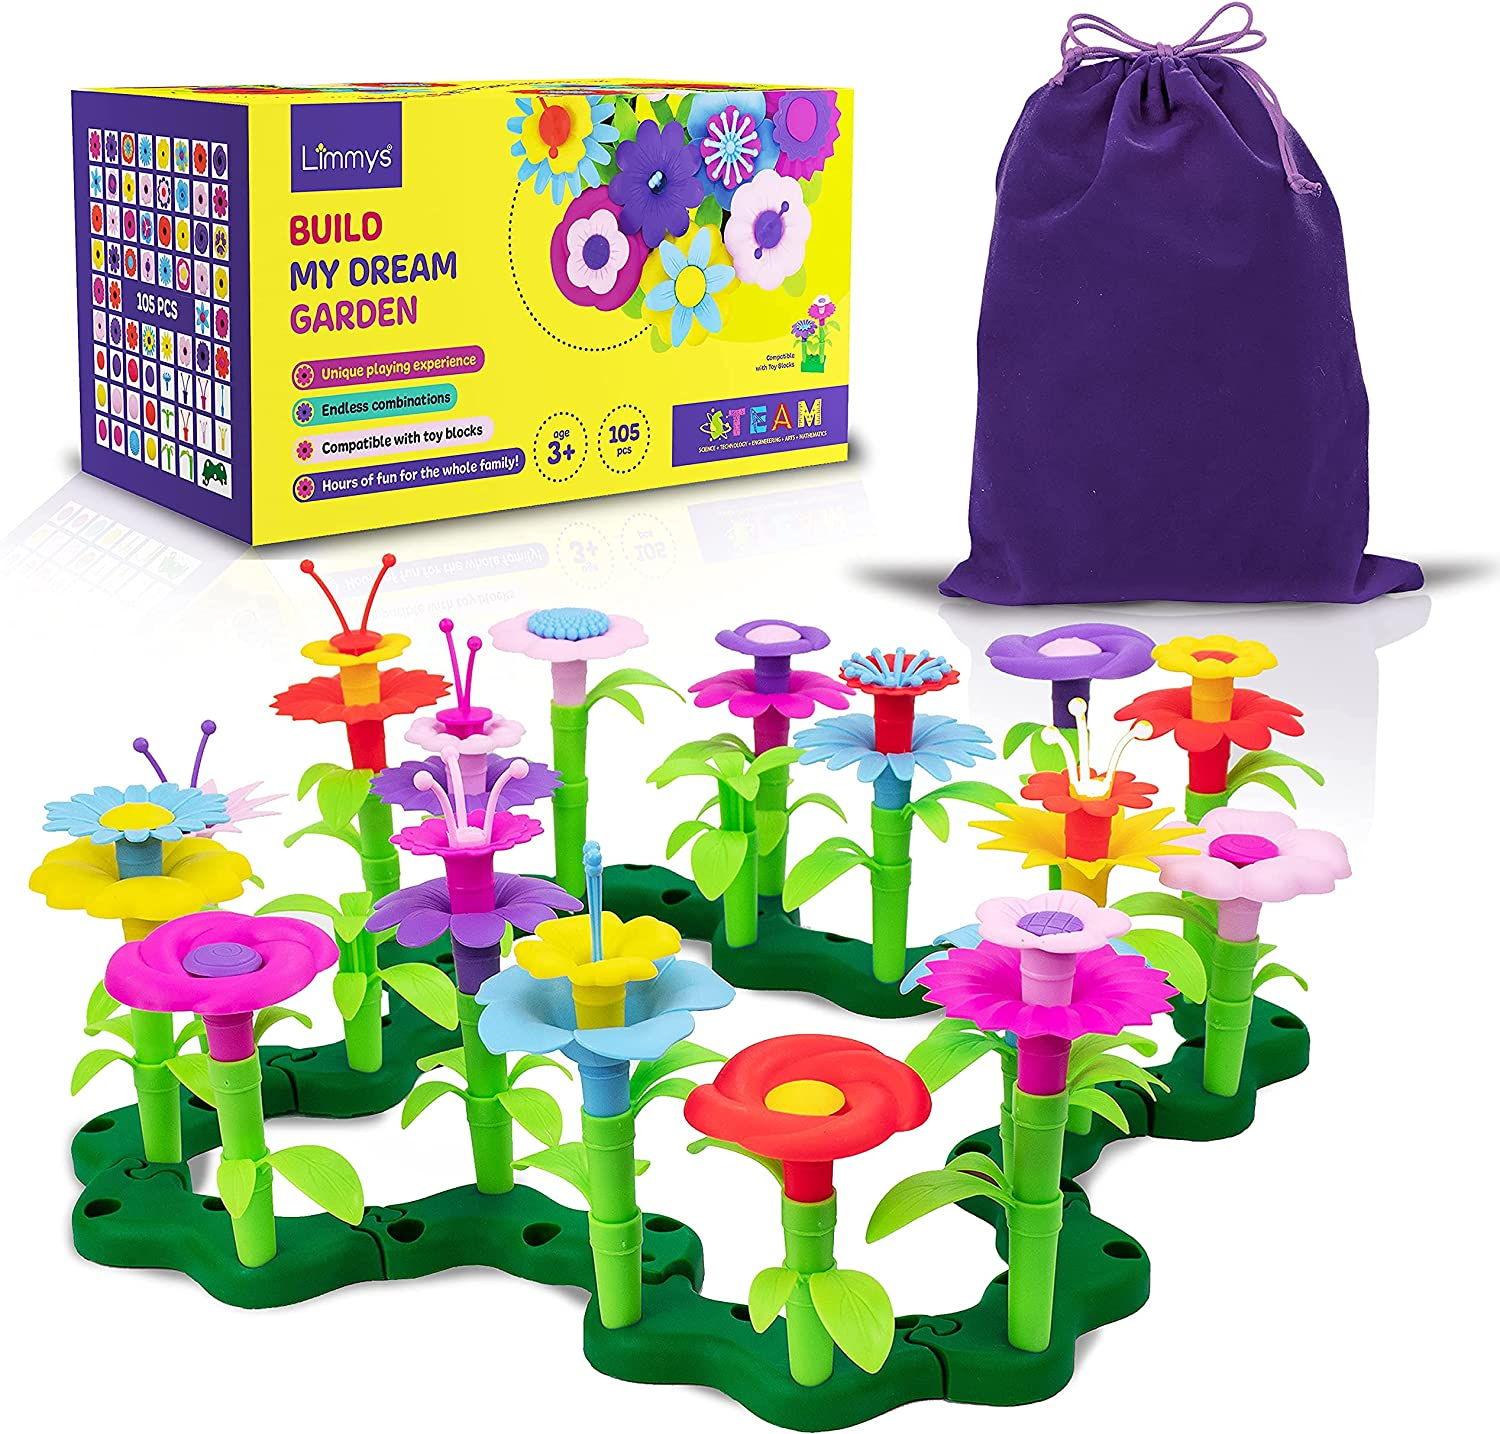 Limmys 105 Piece Build My Dream Garden Toys - STEM Toys for 3 Year Old Girls and Above - Includes Velvet Drawstring Storage Bag - Compatible with Building Blocks